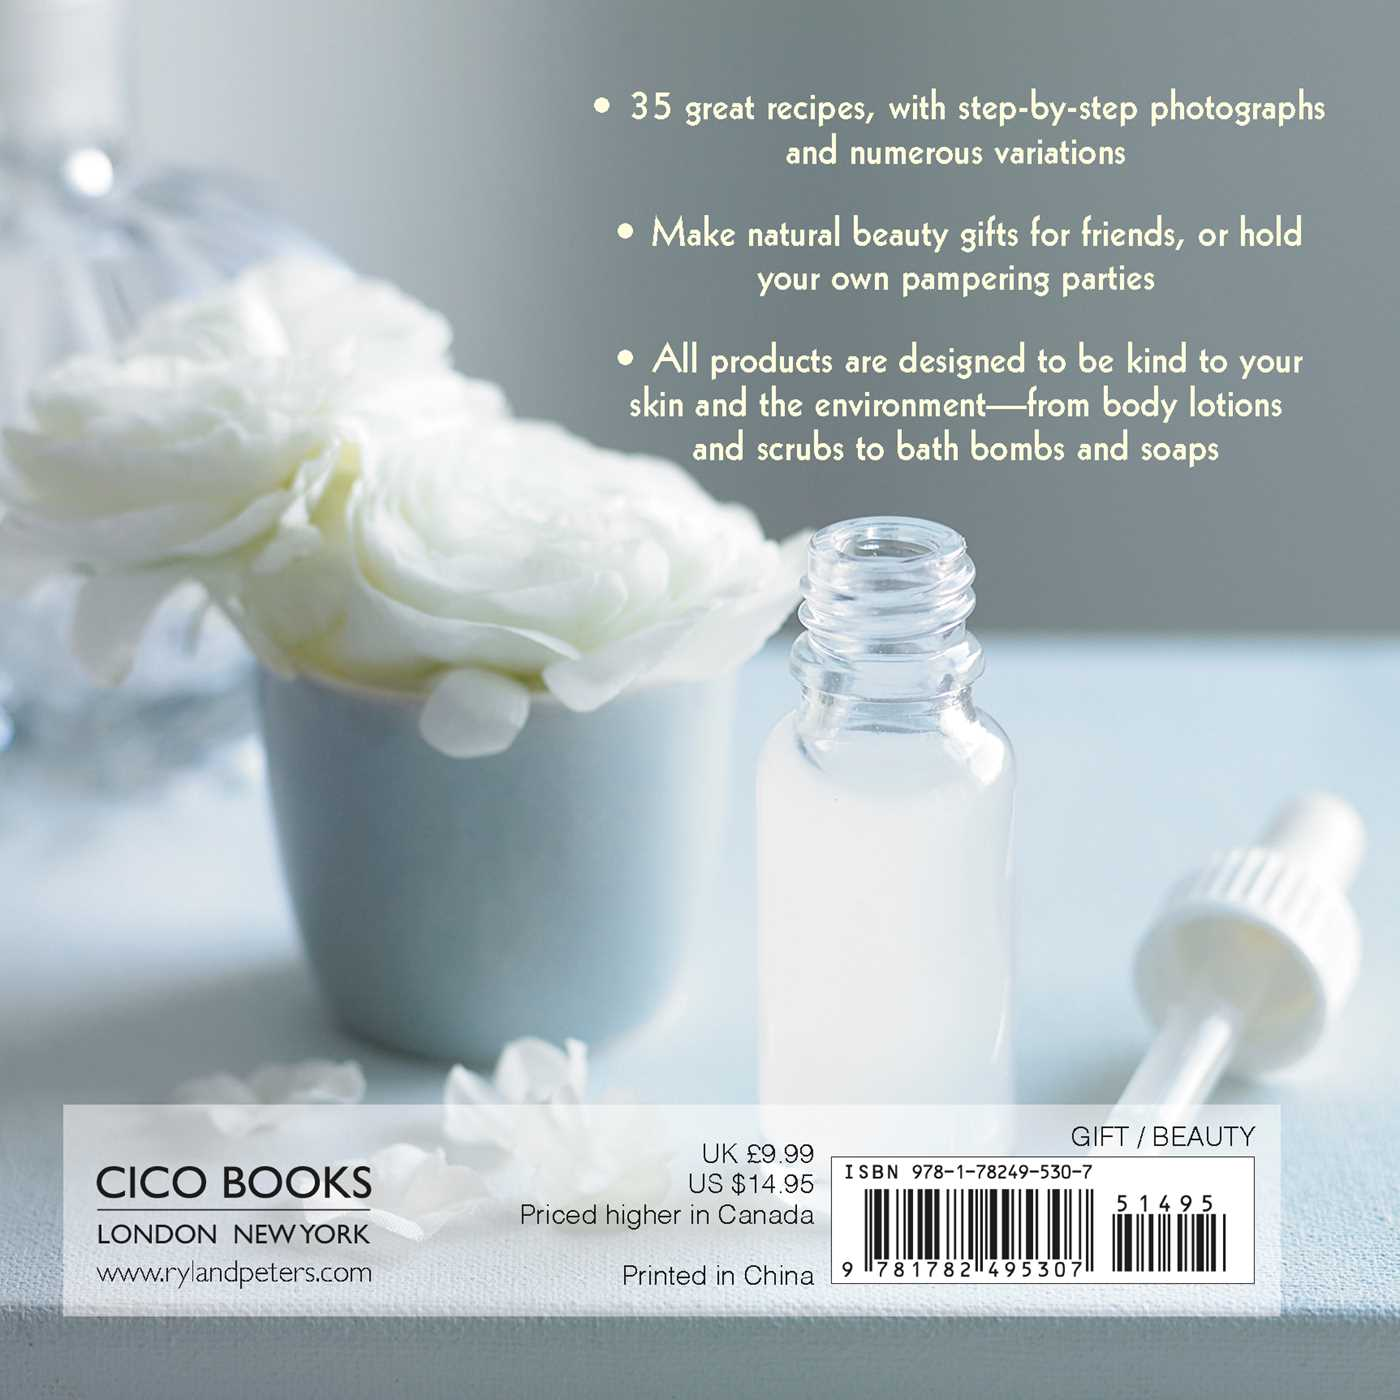 The little pocket book of natural beauty 9781782495307 hr back